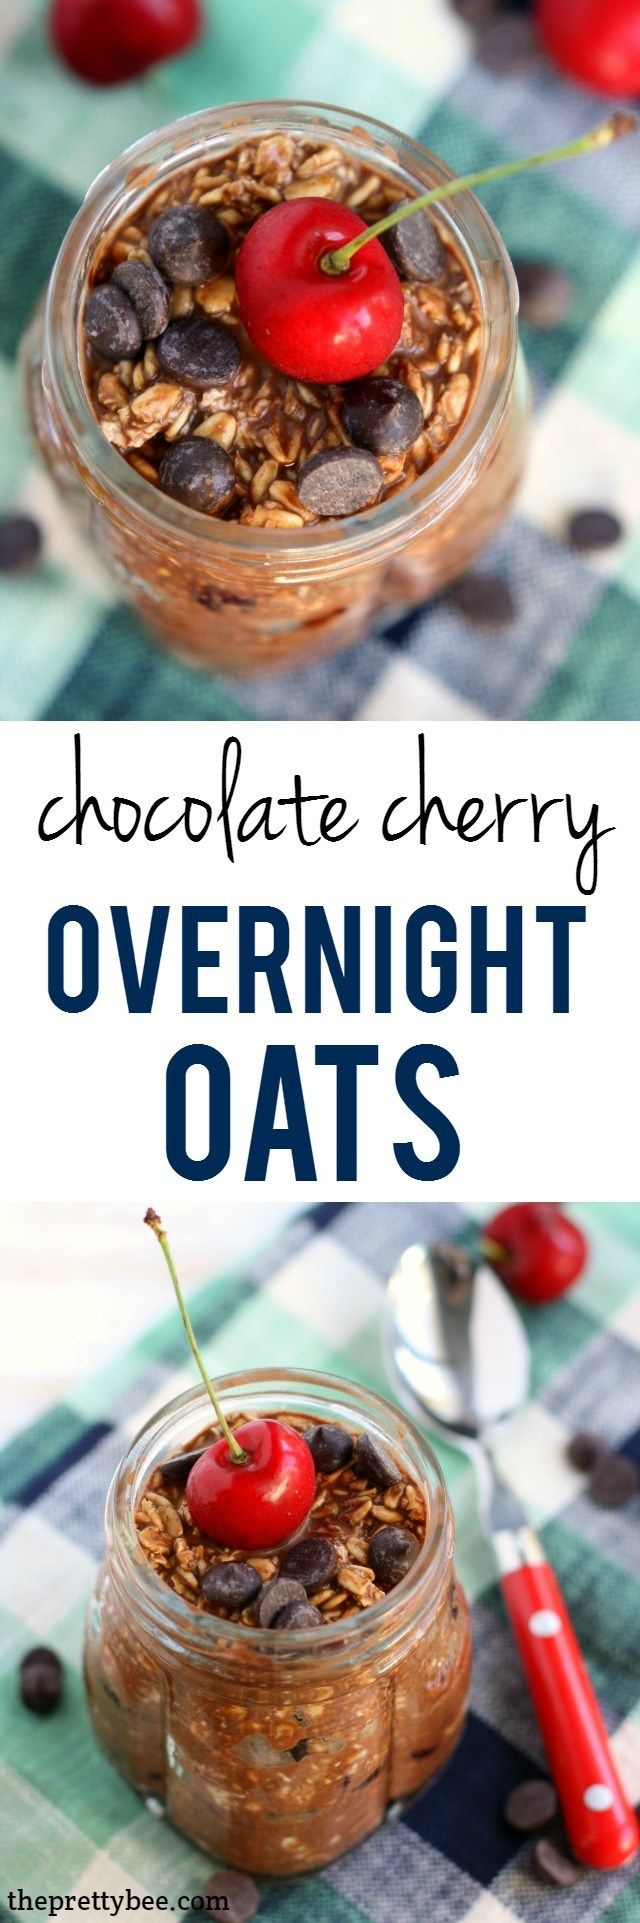 An easy and delicious recipe for chocolate cherry overnight oats. You'll love waking up for this breakfast!